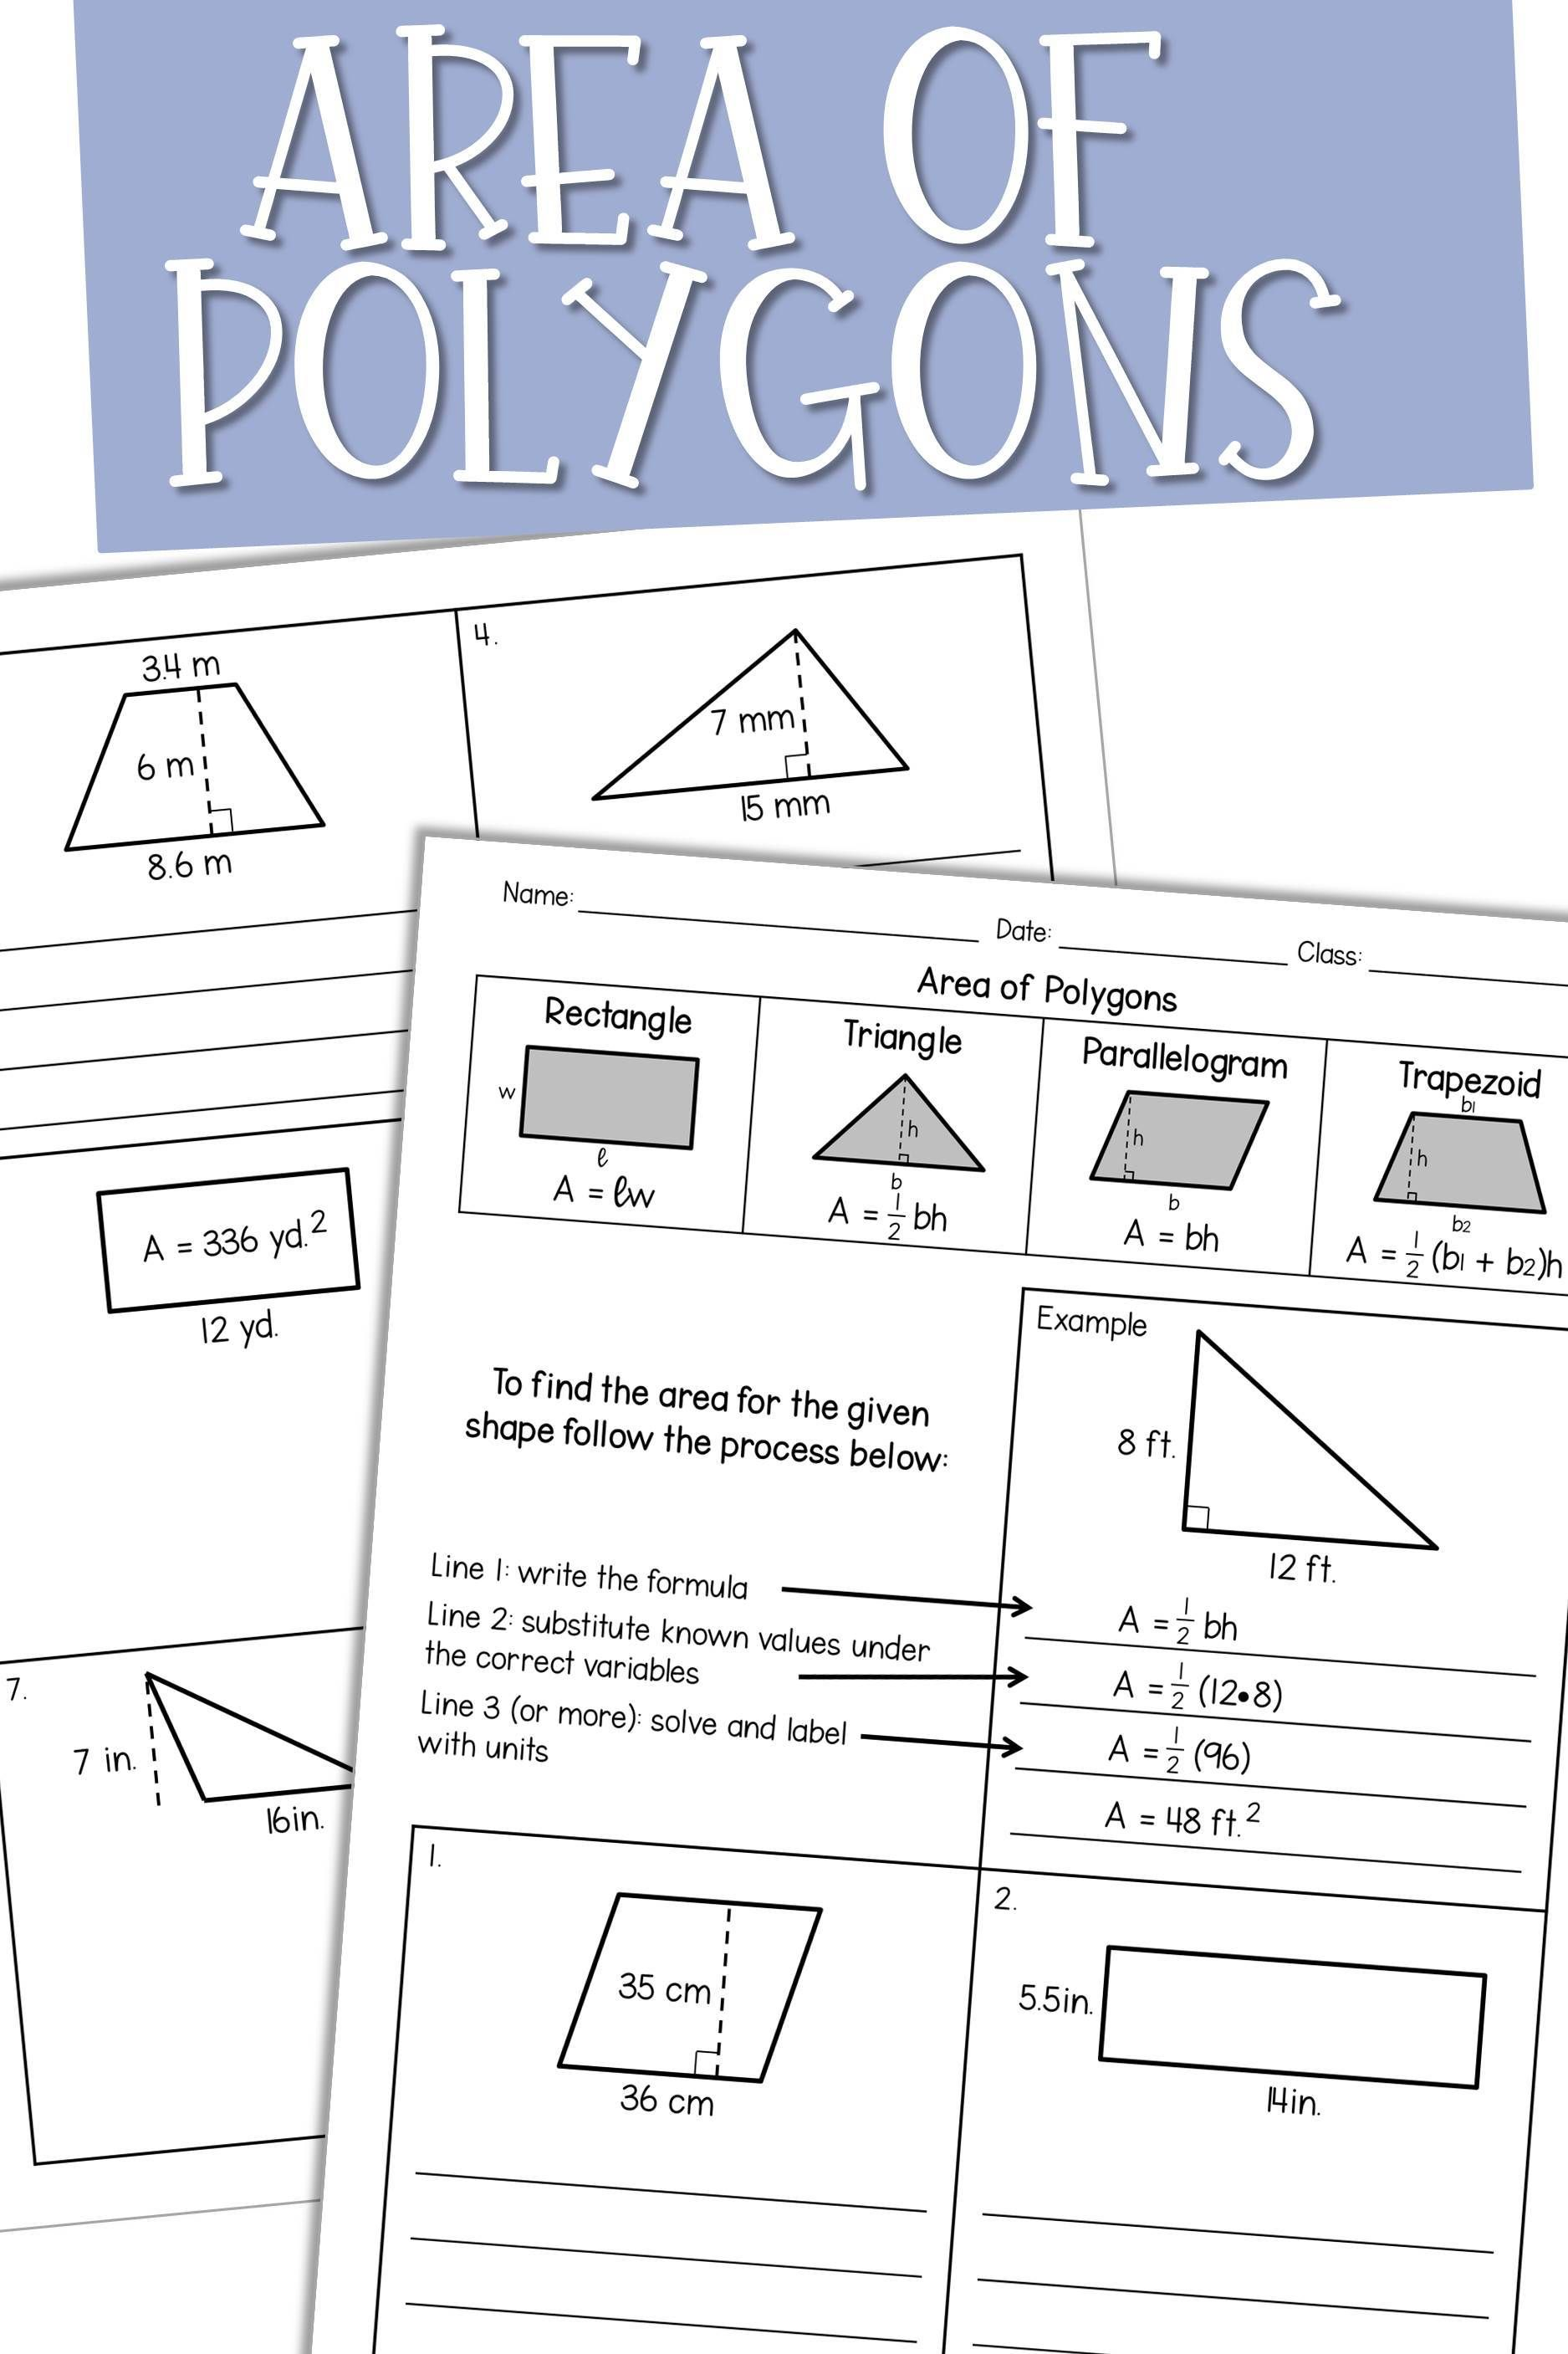 hight resolution of Color Polygons Worksheet   Printable Worksheets and Activities for  Teachers